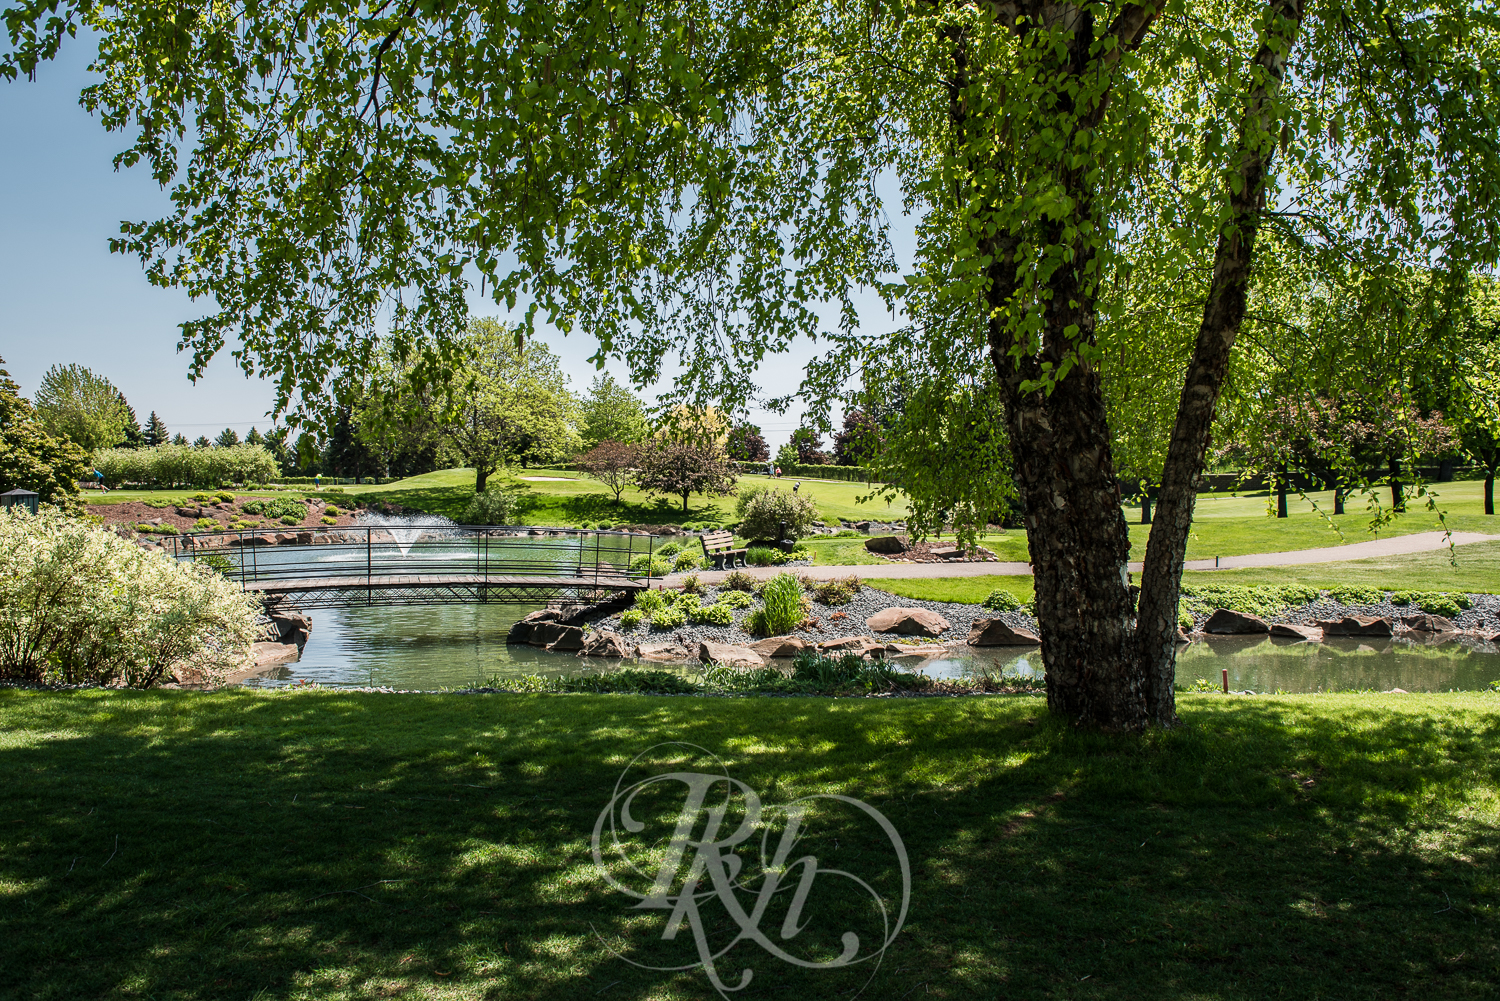 Blog - Whitney & Brent - Minnesota Wedding Photographer - RKH Images - Blog-2.jpg